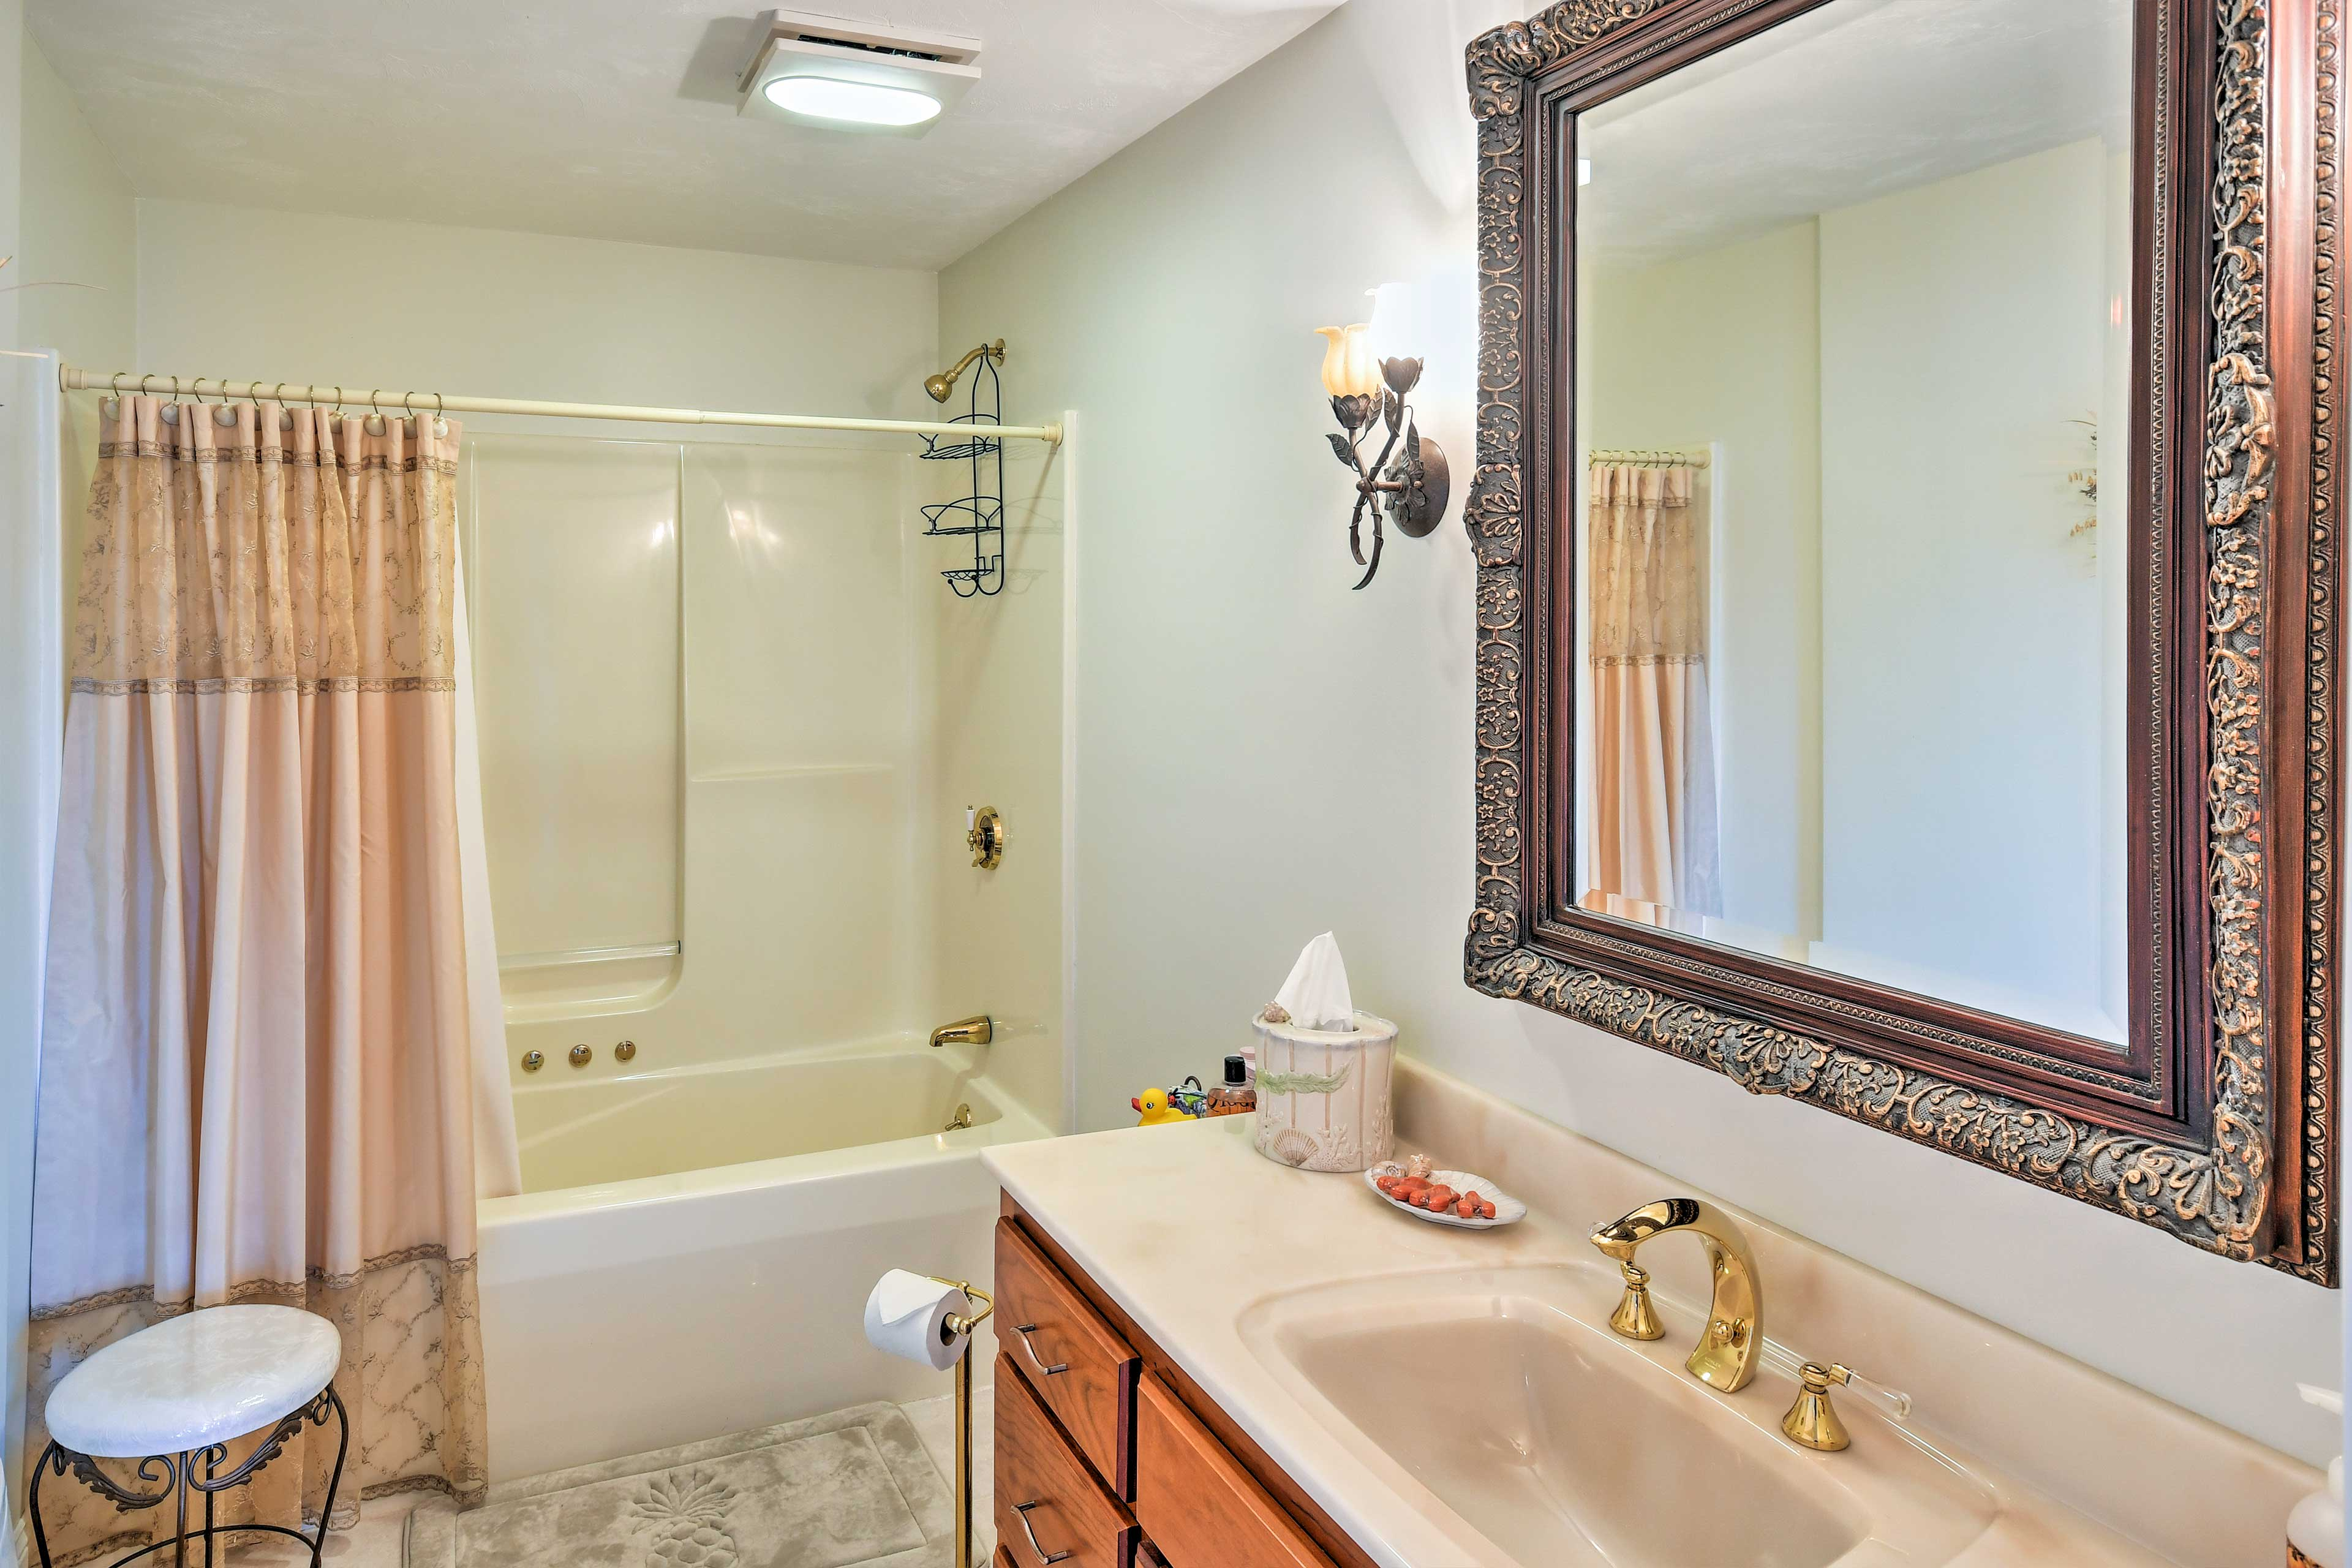 Clean up in the single vanity and shower/tub combo.